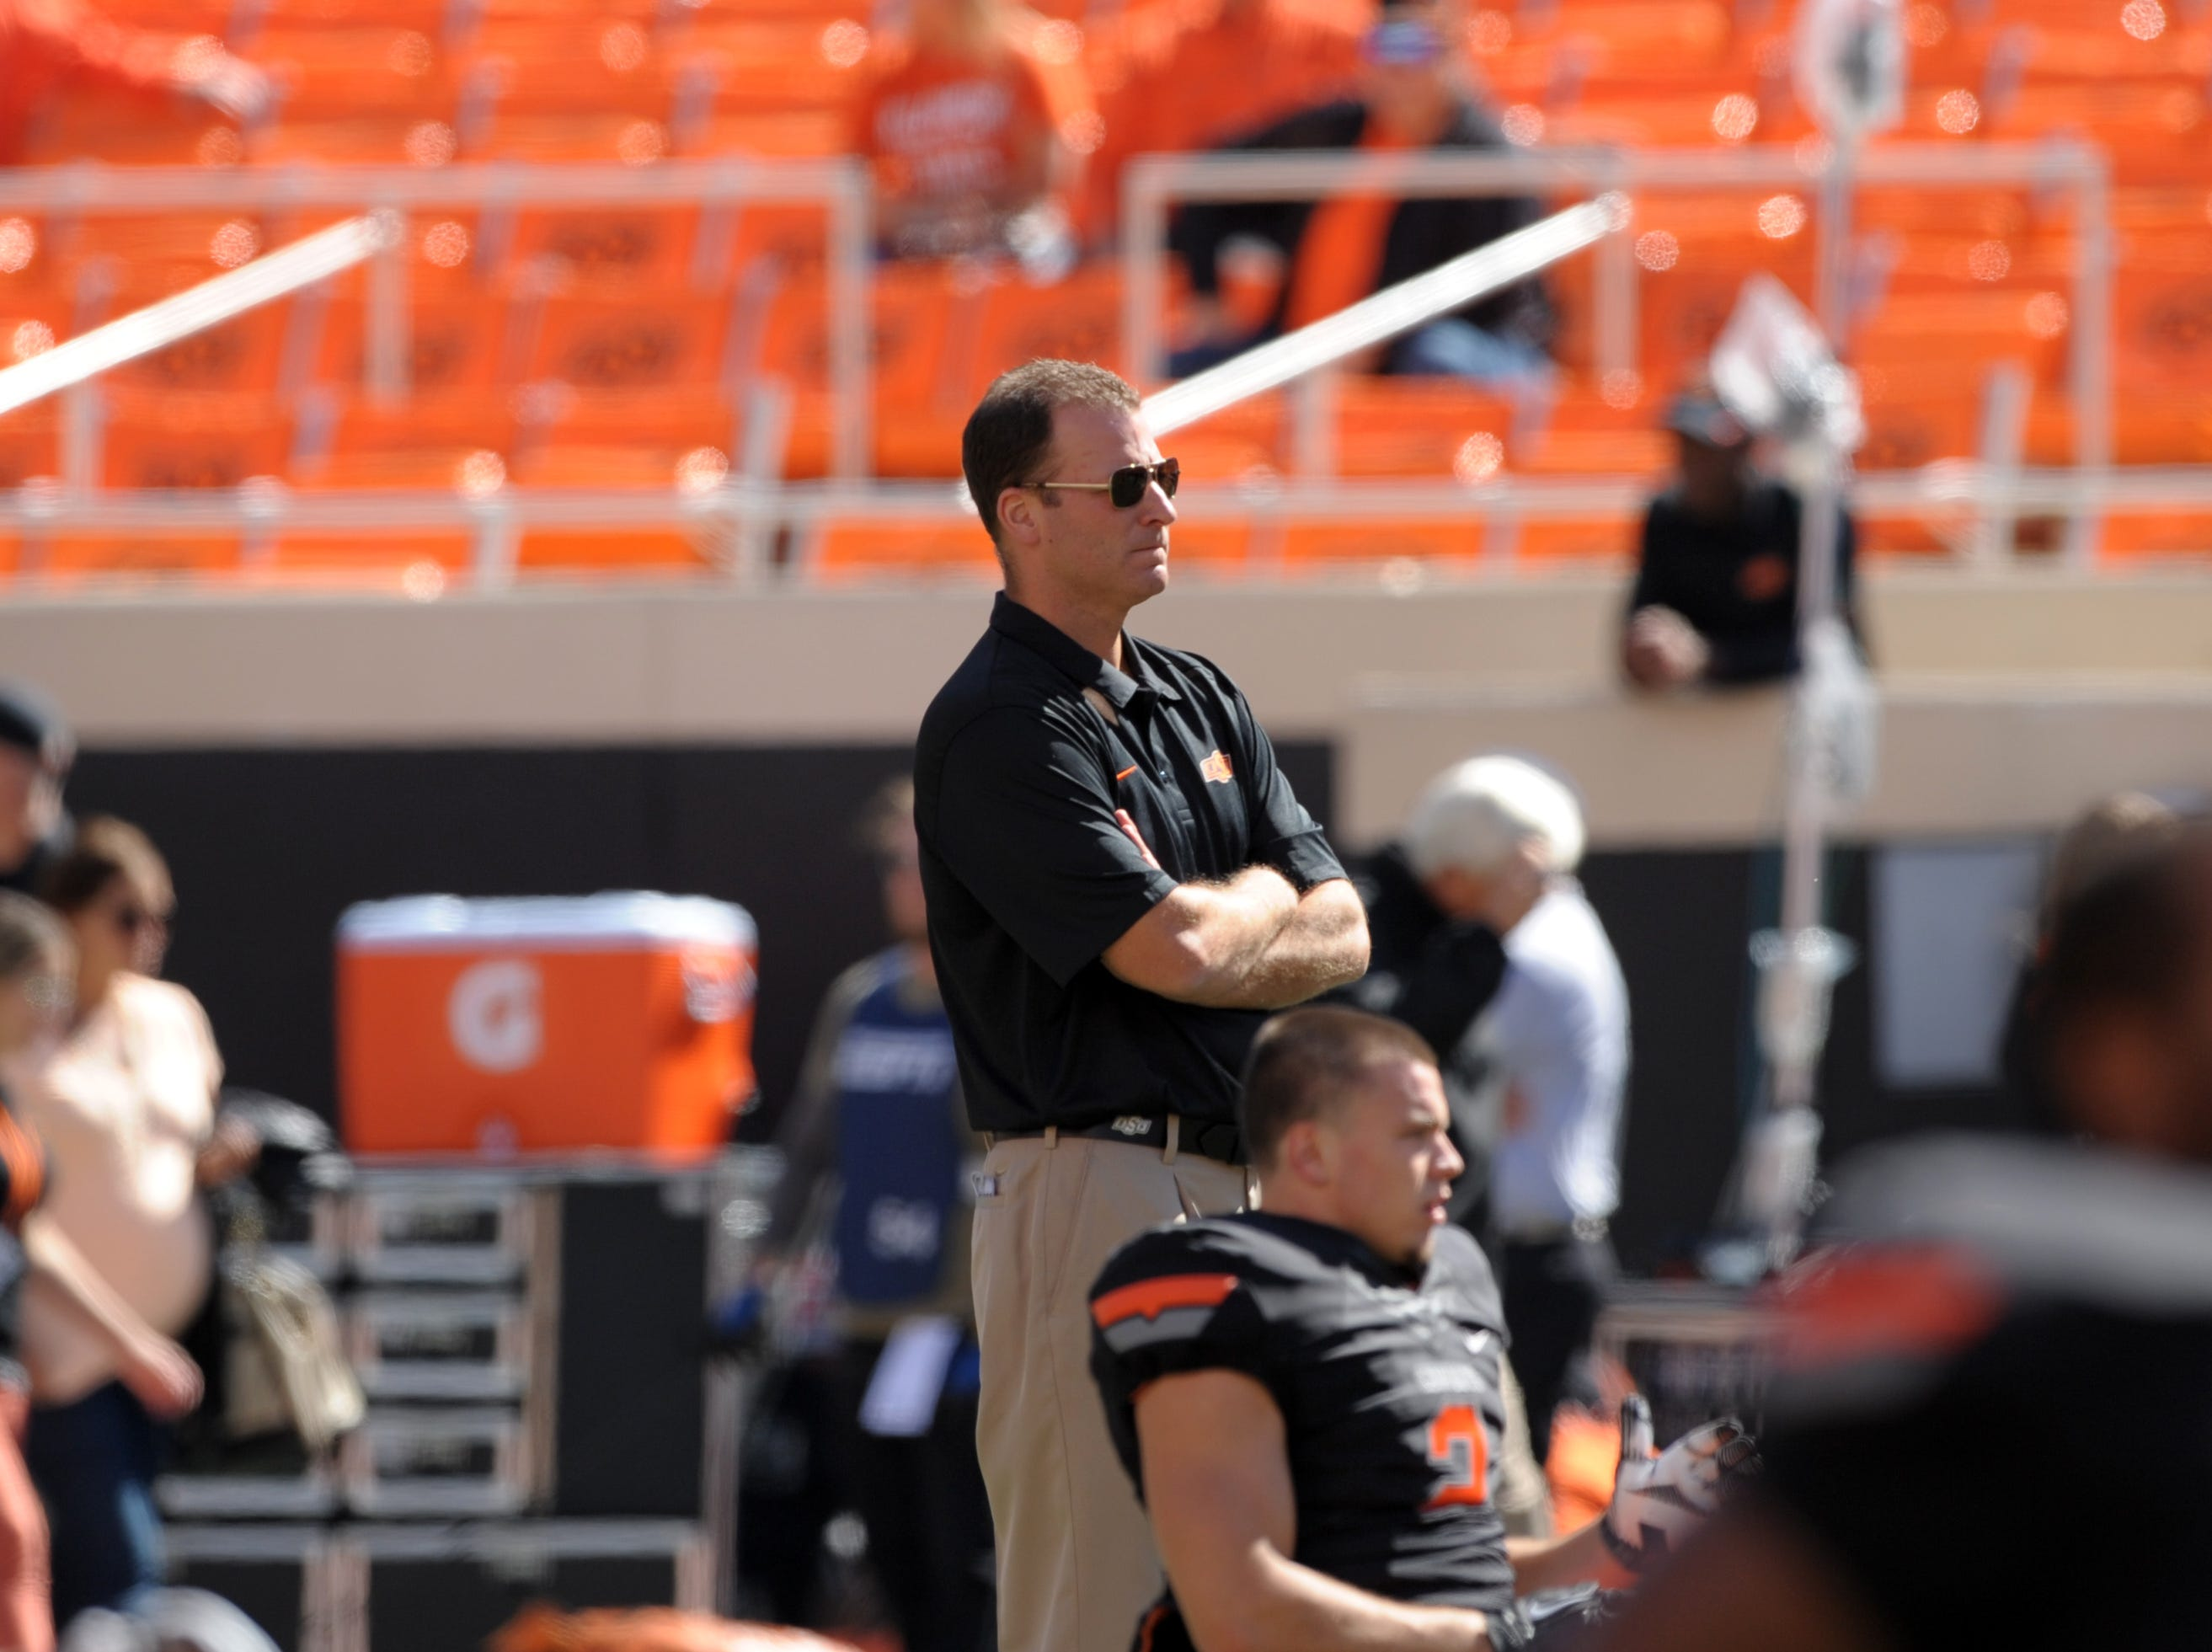 First year Oklahoma State offensive coordinator Mike Yurcich, watches warm-ups before an NCAA football game in Stillwater, Okla., Saturday, Oct. 5, 2013. Oklahoma State defeated Kansas State 33-29.